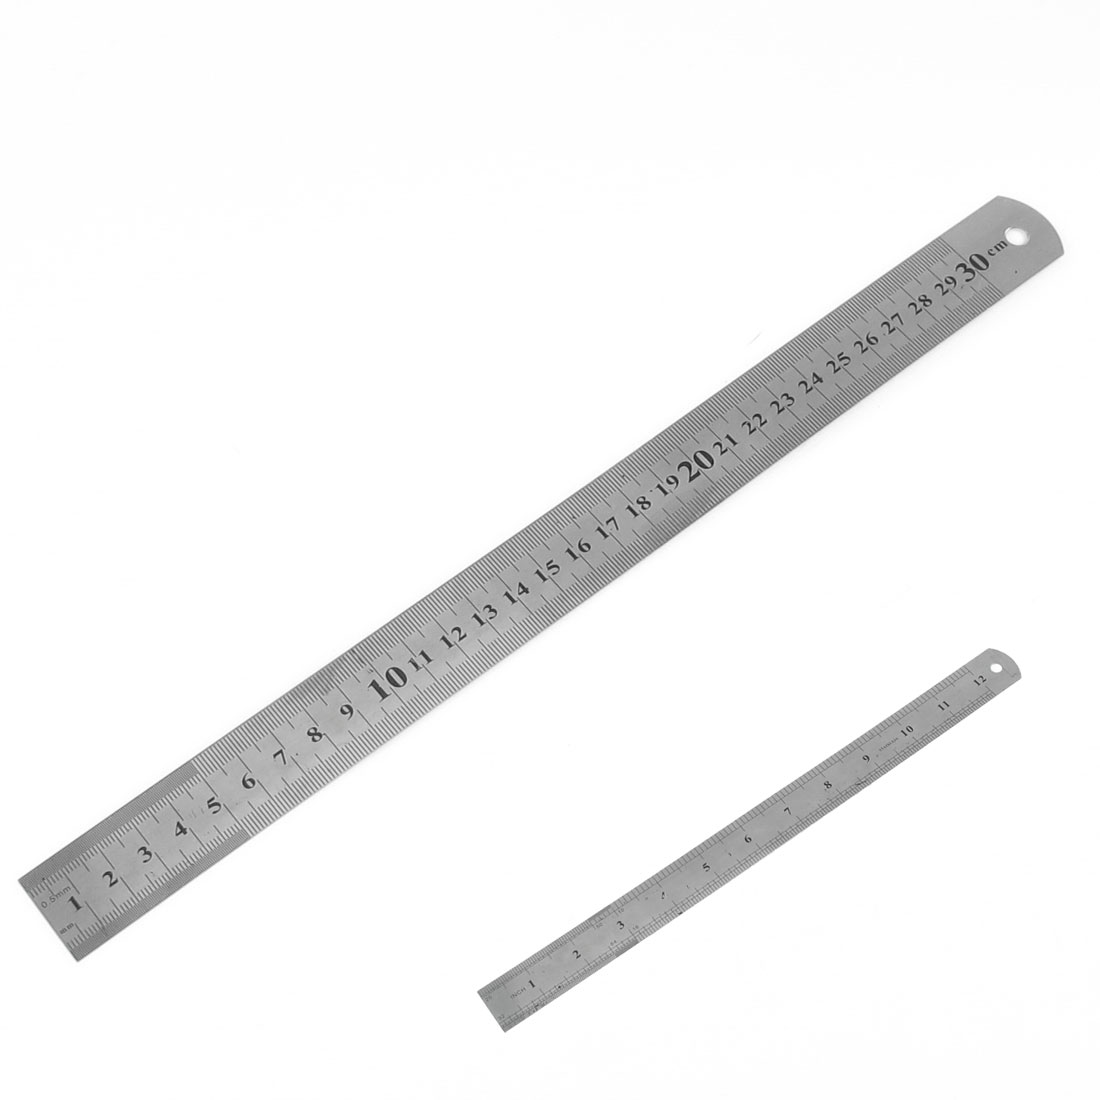 Silver Tone Stainless Steel Workshop Factory Dual Scale Ruler